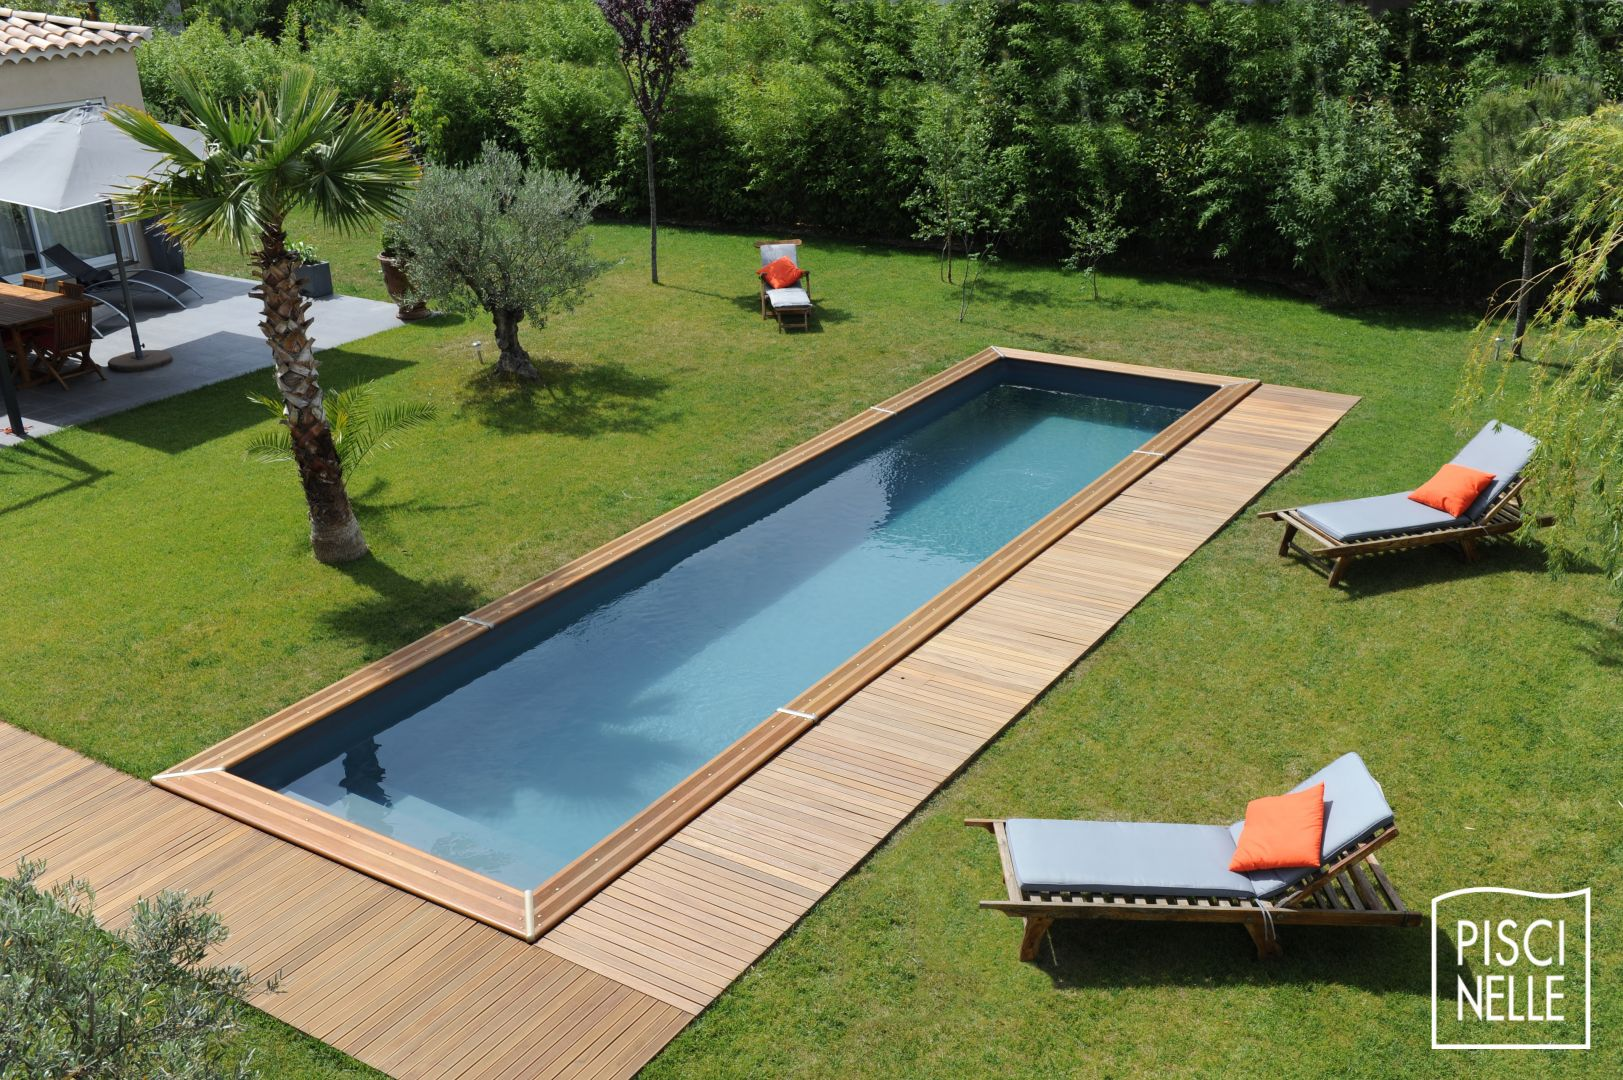 Piscine semi enterree bois prix for Prix piscine 9x4